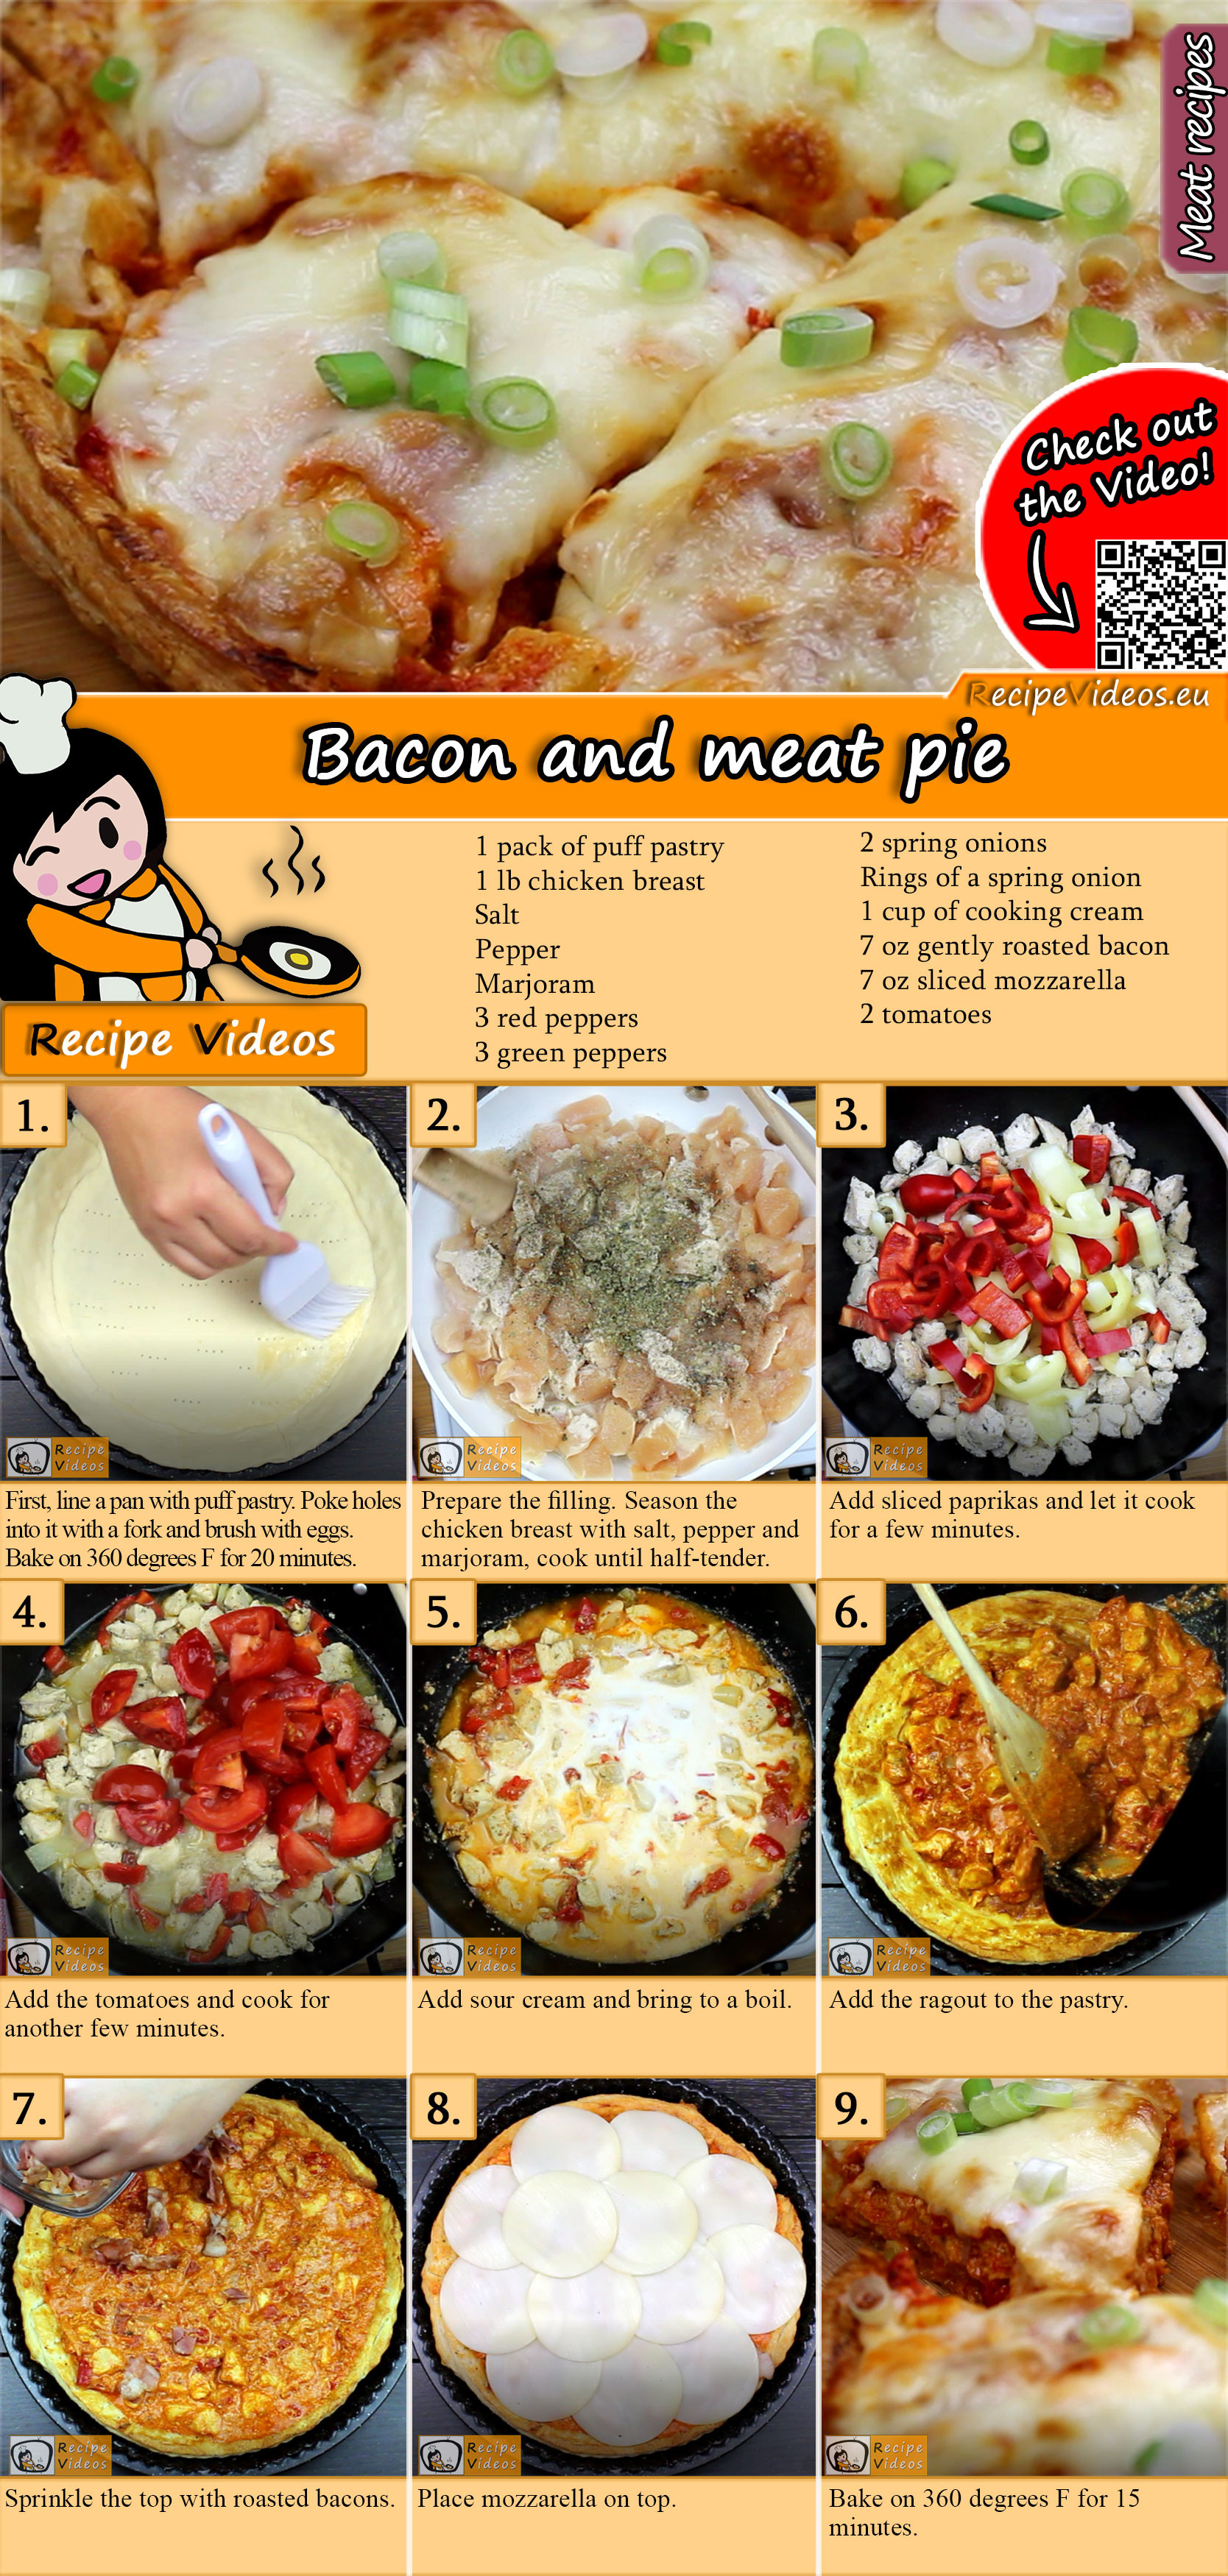 Bacon and meat pie recipe with video